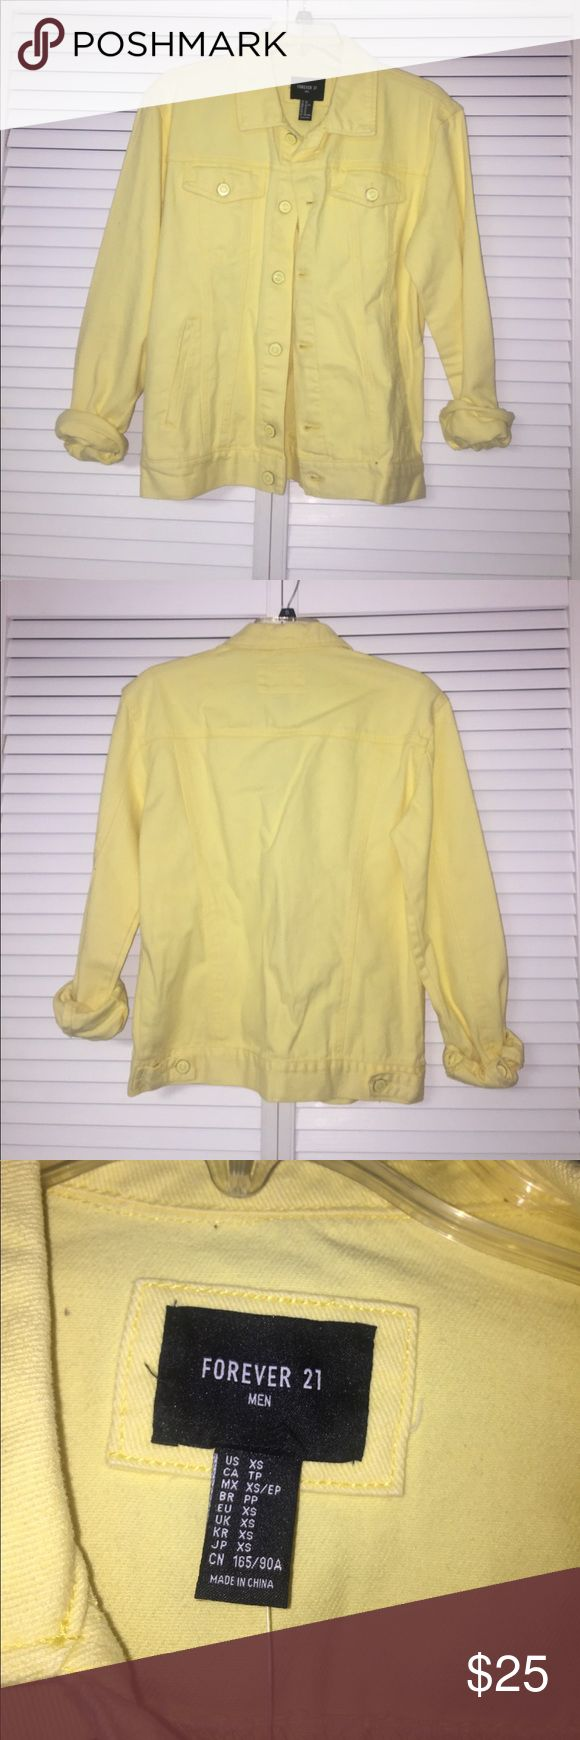 Unisex yellow denim jacket 'Forever 21 Men'-light yellow denim jacket. Brand new. Everyone. Will look fabulous on a woman as oversize denim jacket. Forever 21 Jackets & Coats